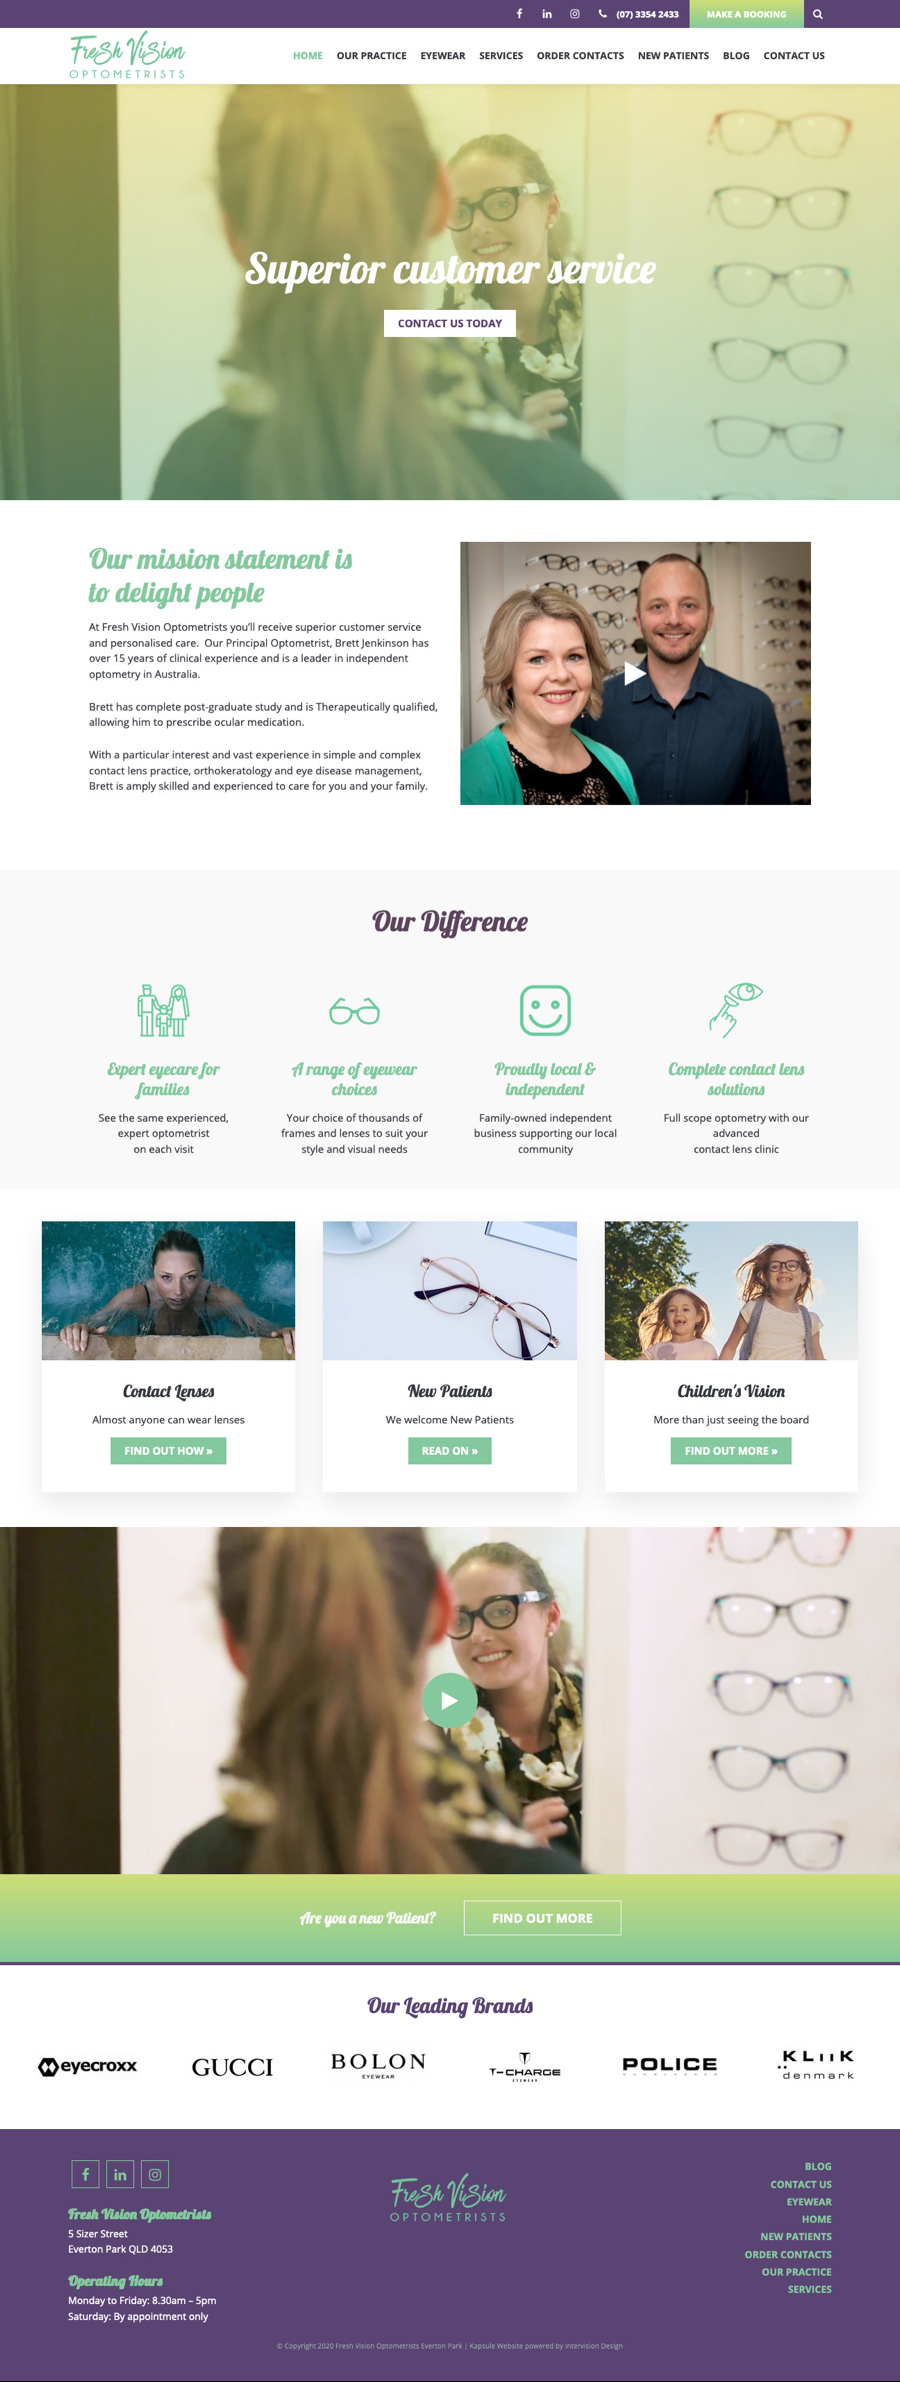 Fresh Vision by Kapsule Websites